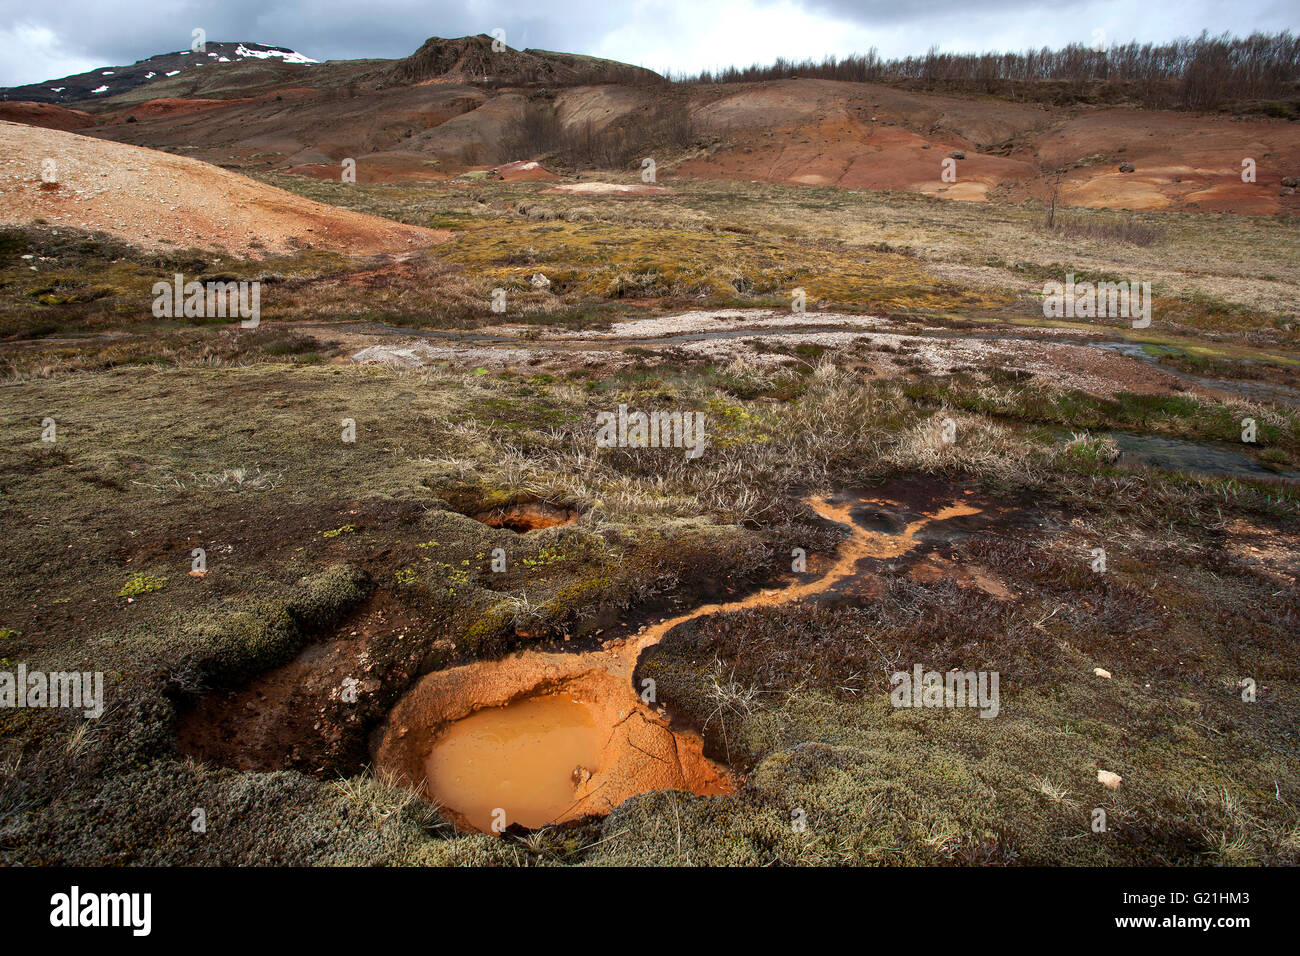 Landscape in the high temperature area Haukadalur Valley, tourist attractions, Golden Circle Route, Iceland Stock Photo